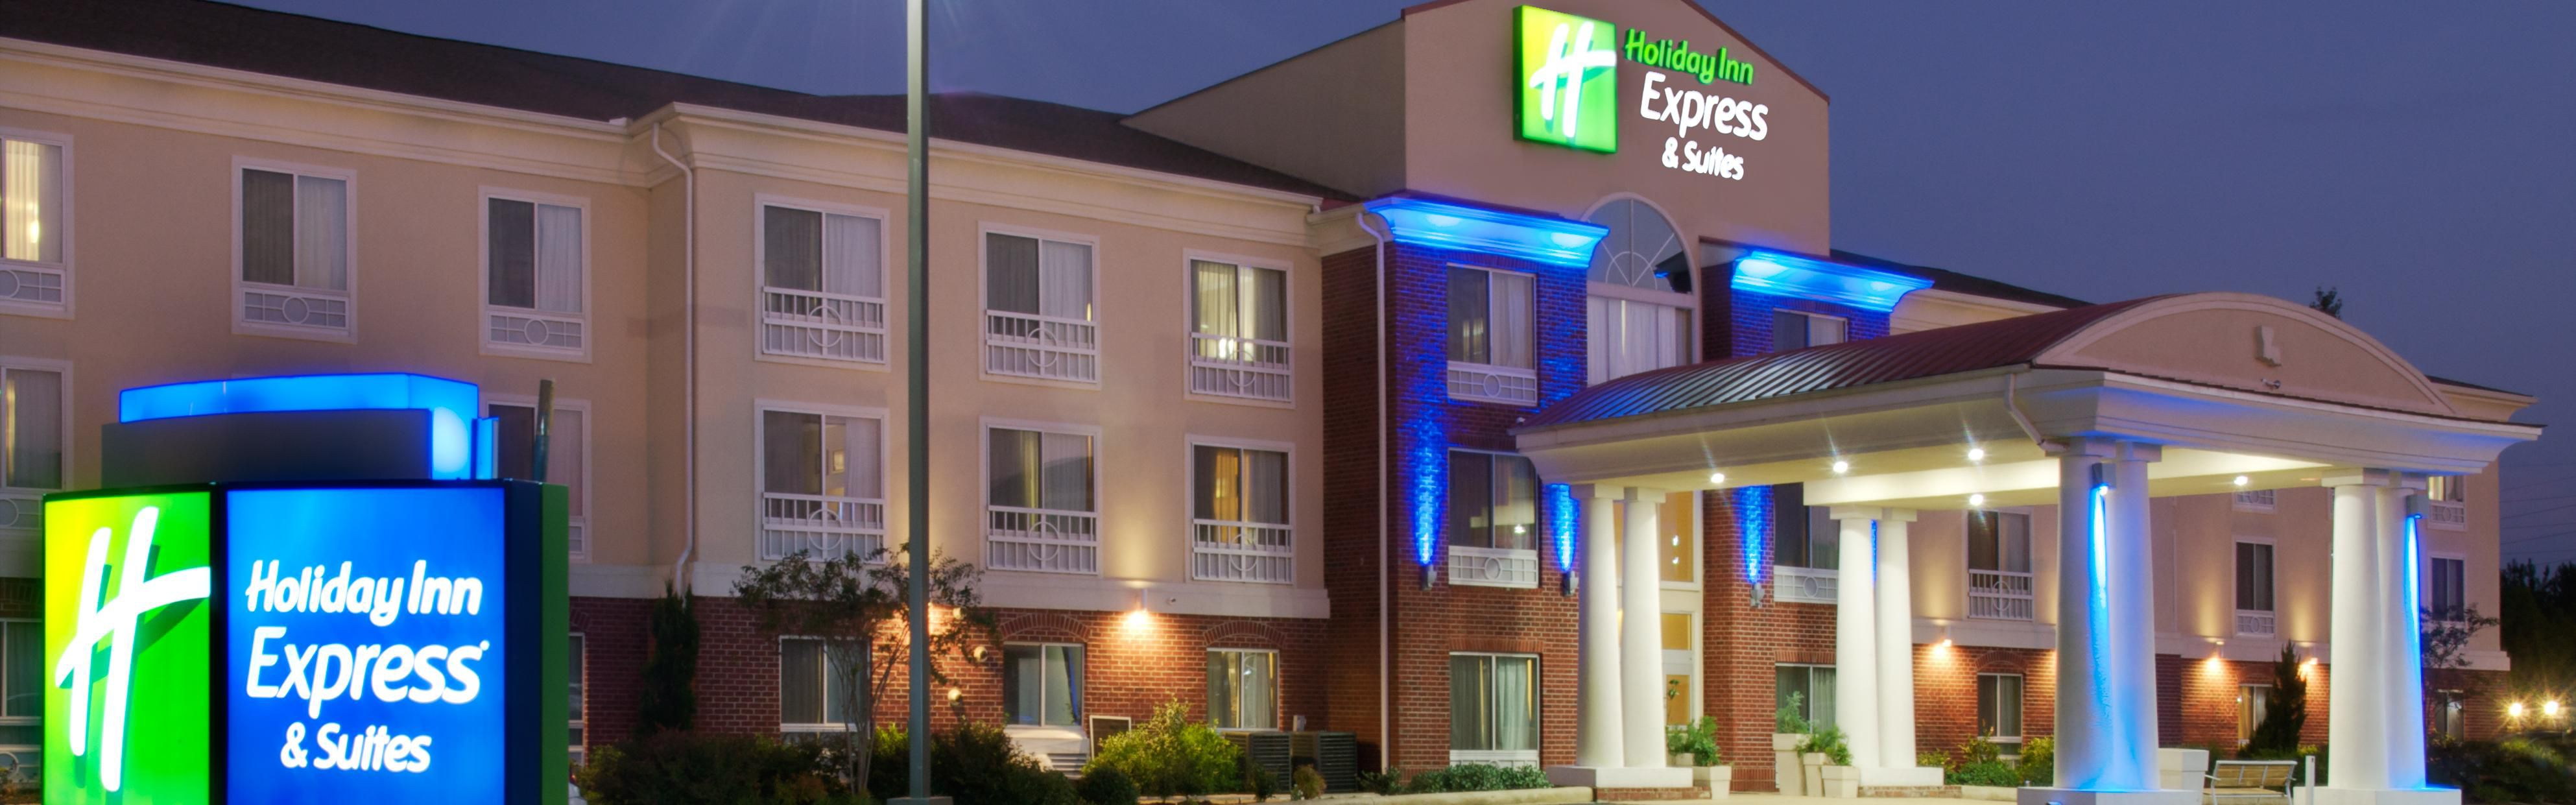 Holiday Inn Express & Suites Natchitoches image 0